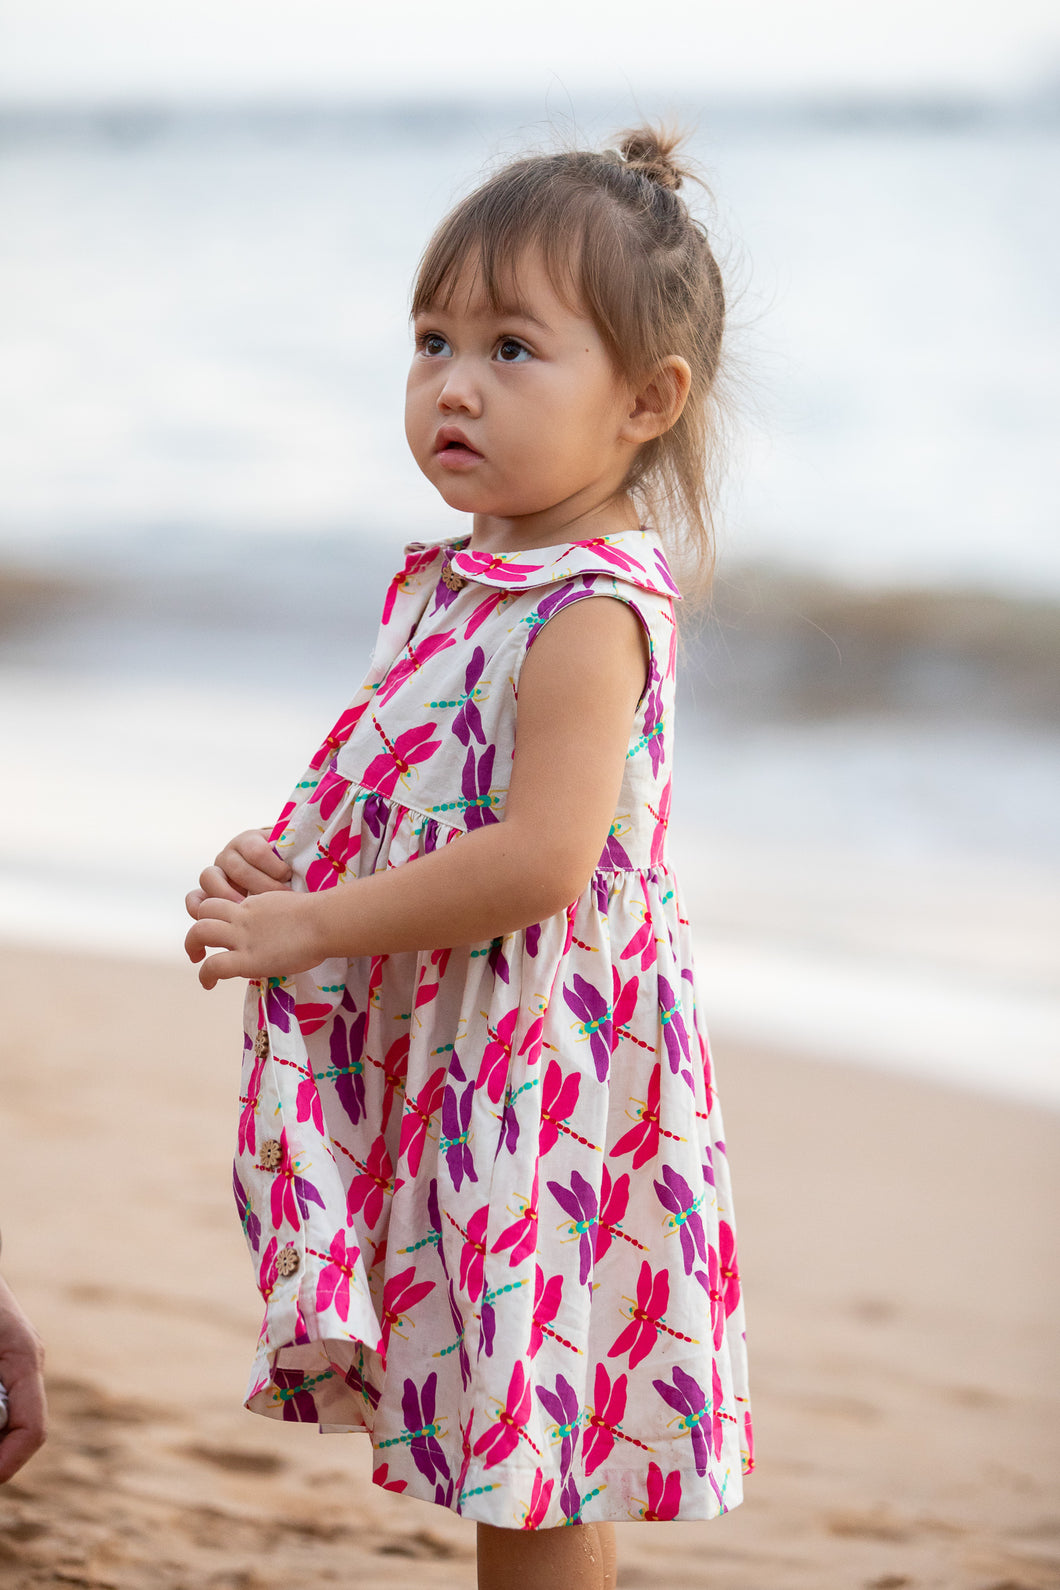 Children's dress in dragonfly print.